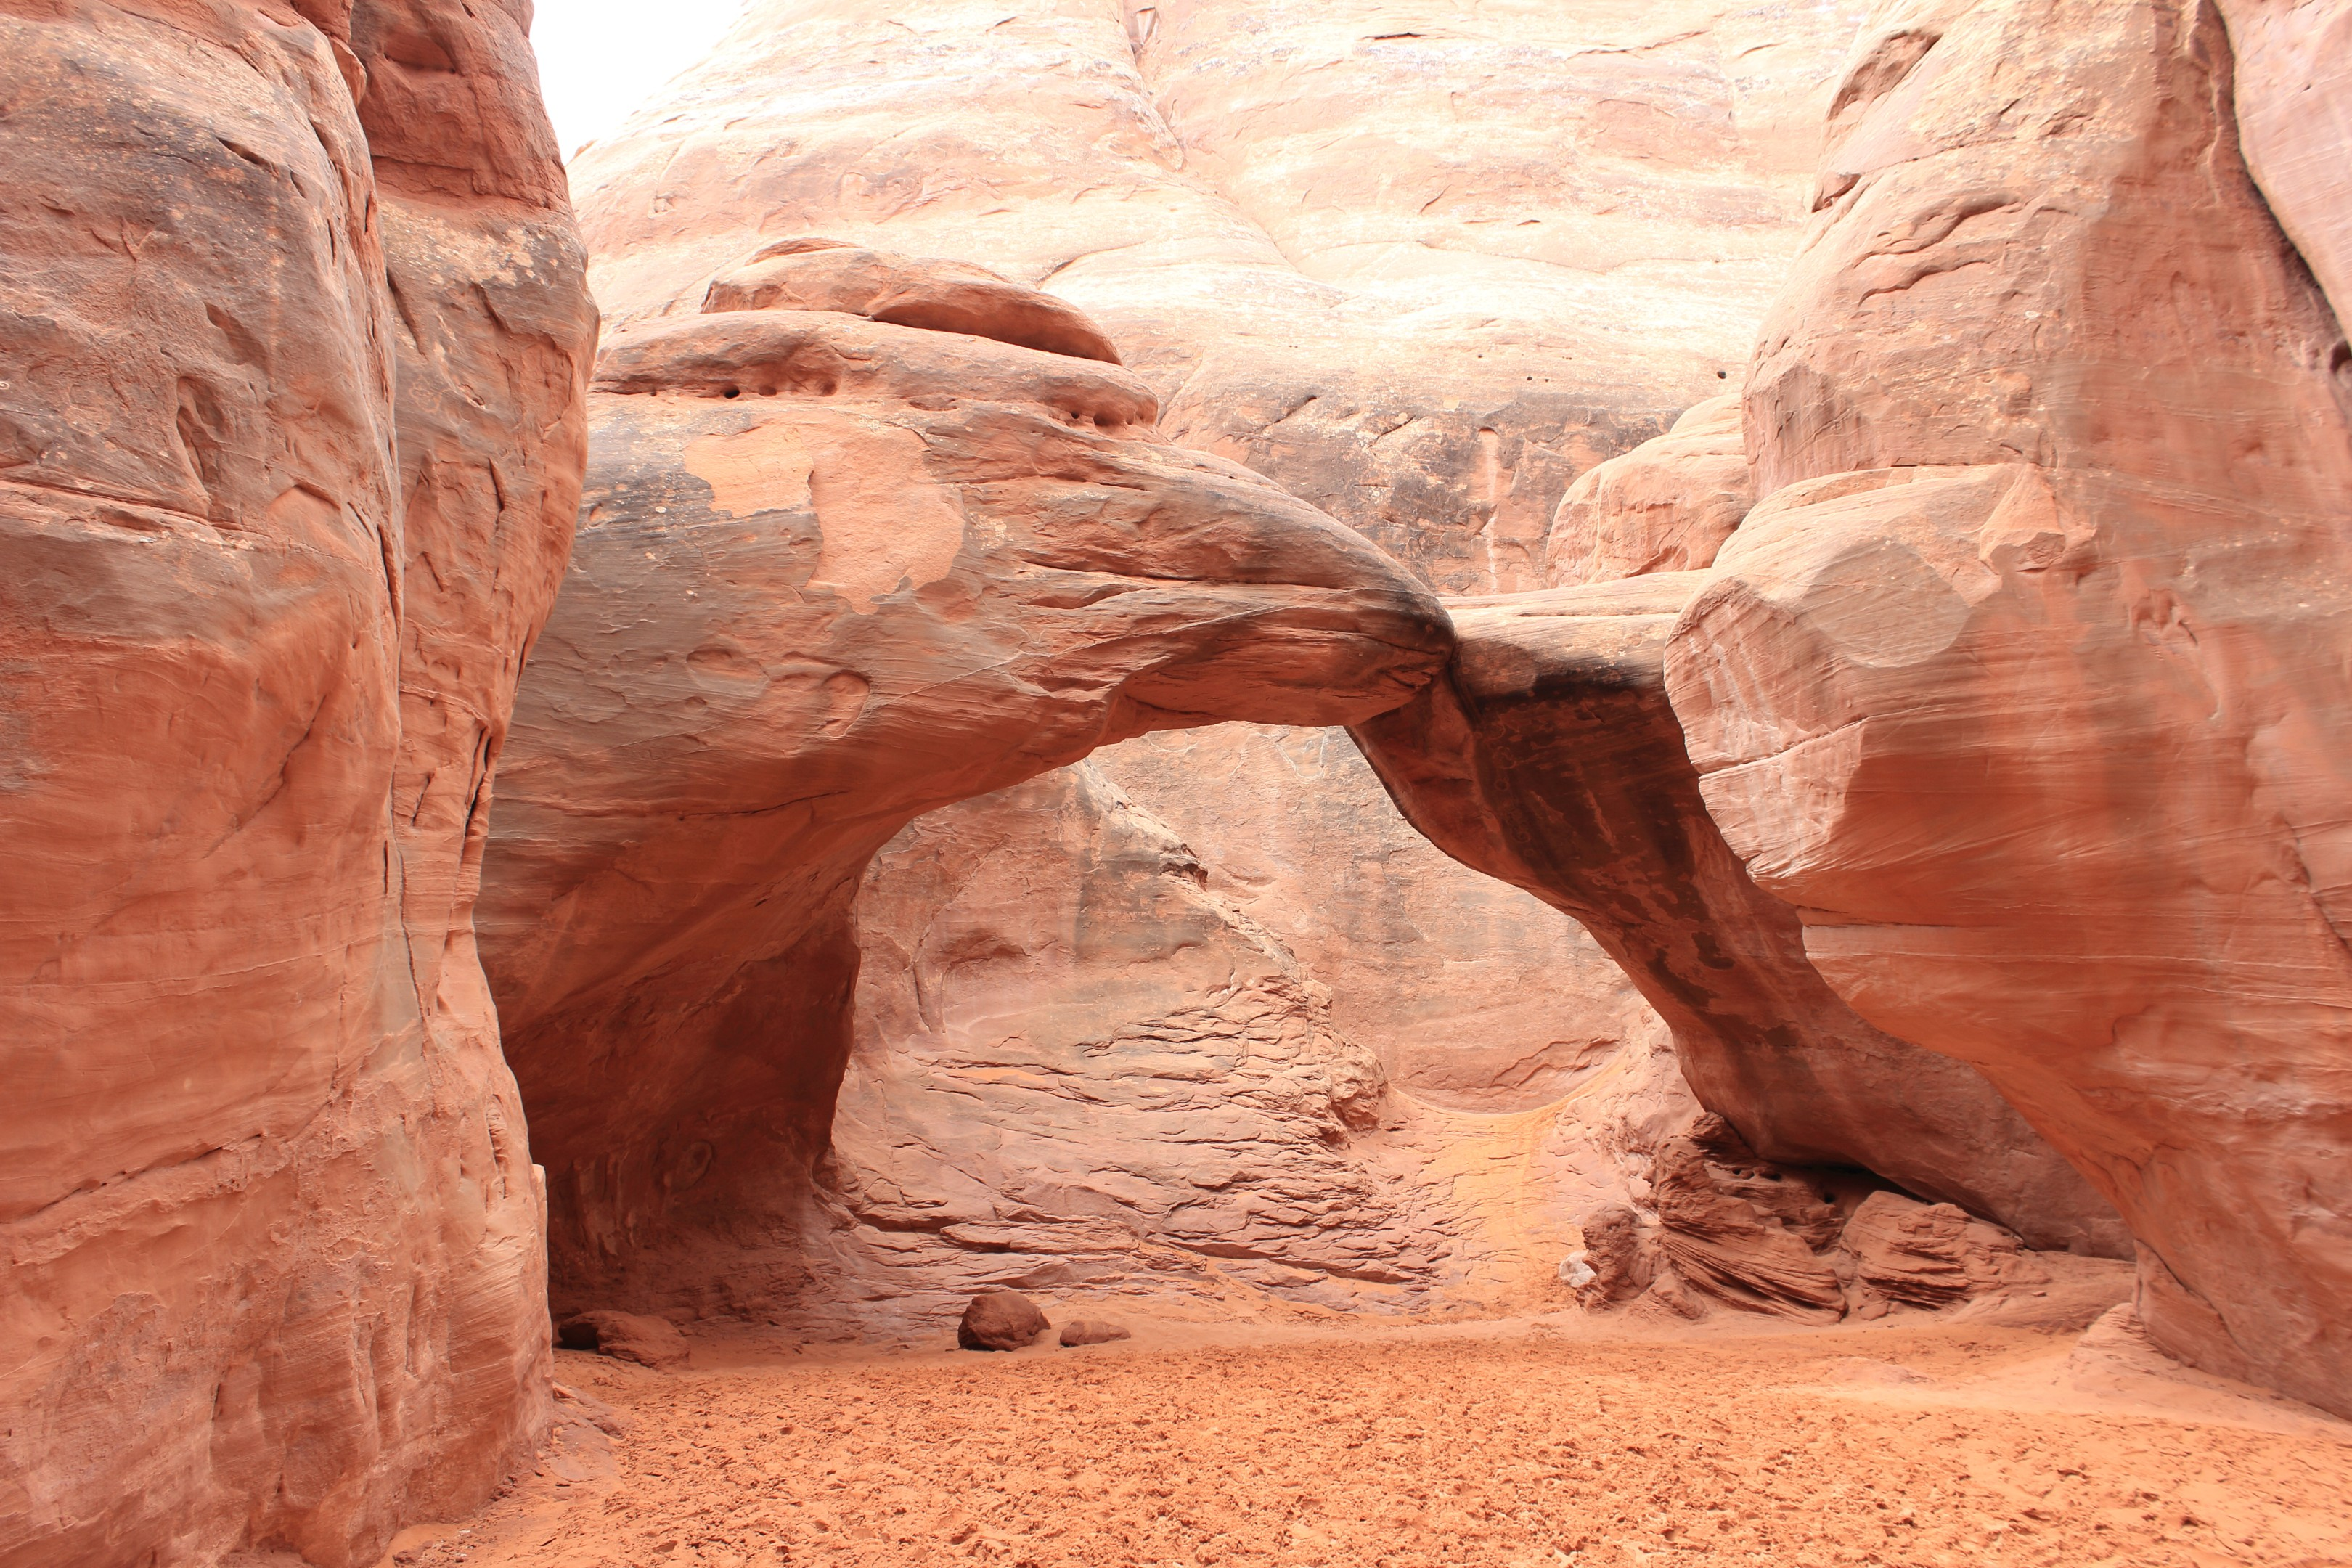 The Sand Dune Arch. This arch is in a long valley surrounded by large fins. The valley is filled with deep sand -- presumably retained by the fins and possibly deposited by the wind.